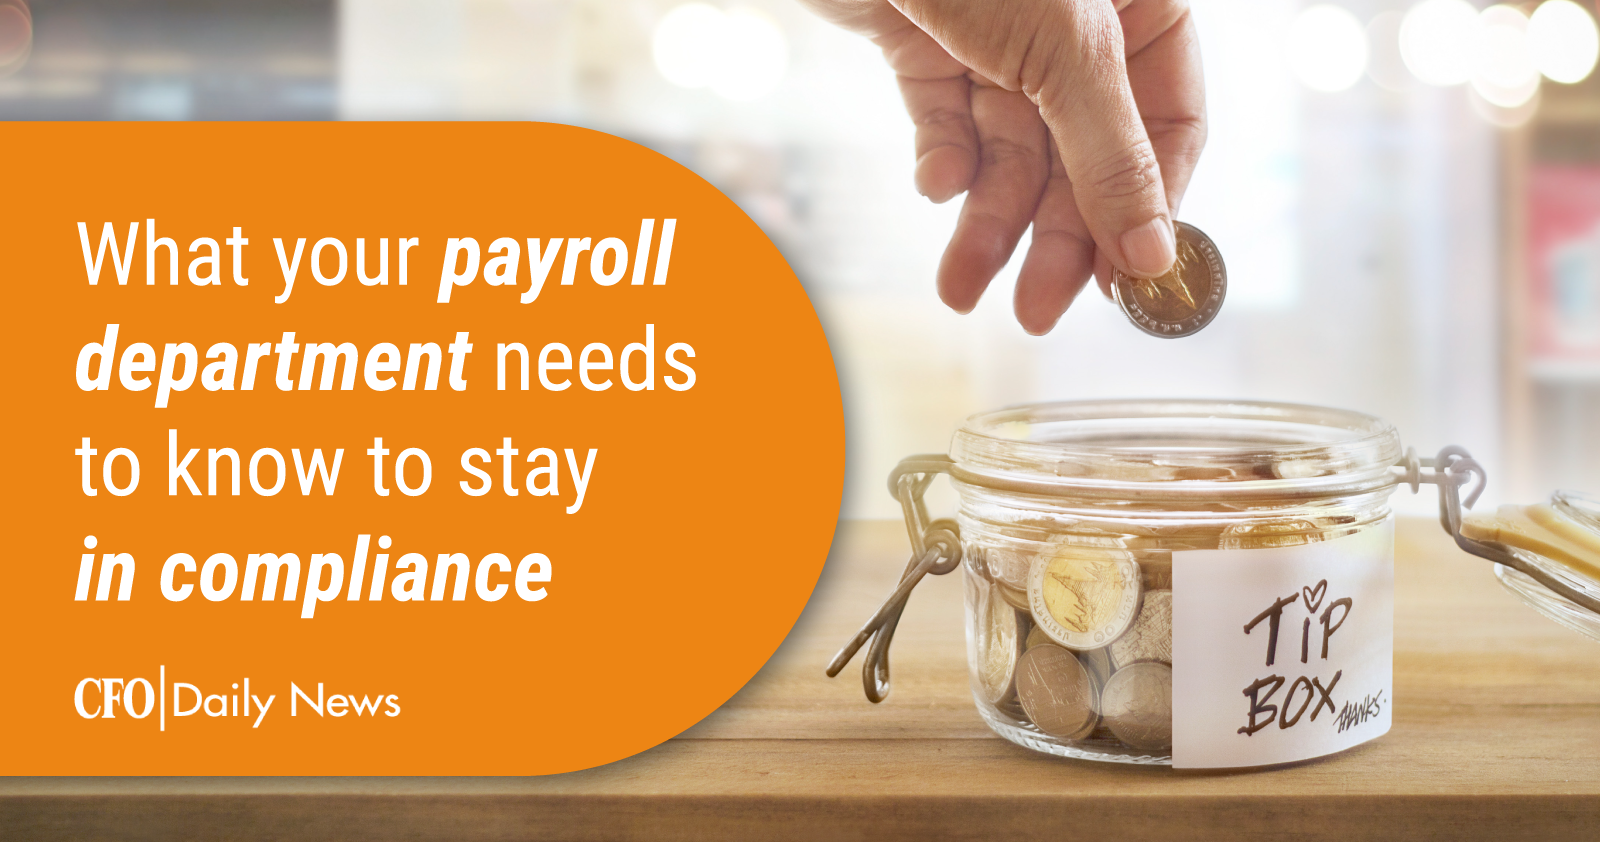 what your payroll department needs to know to stay in compliance